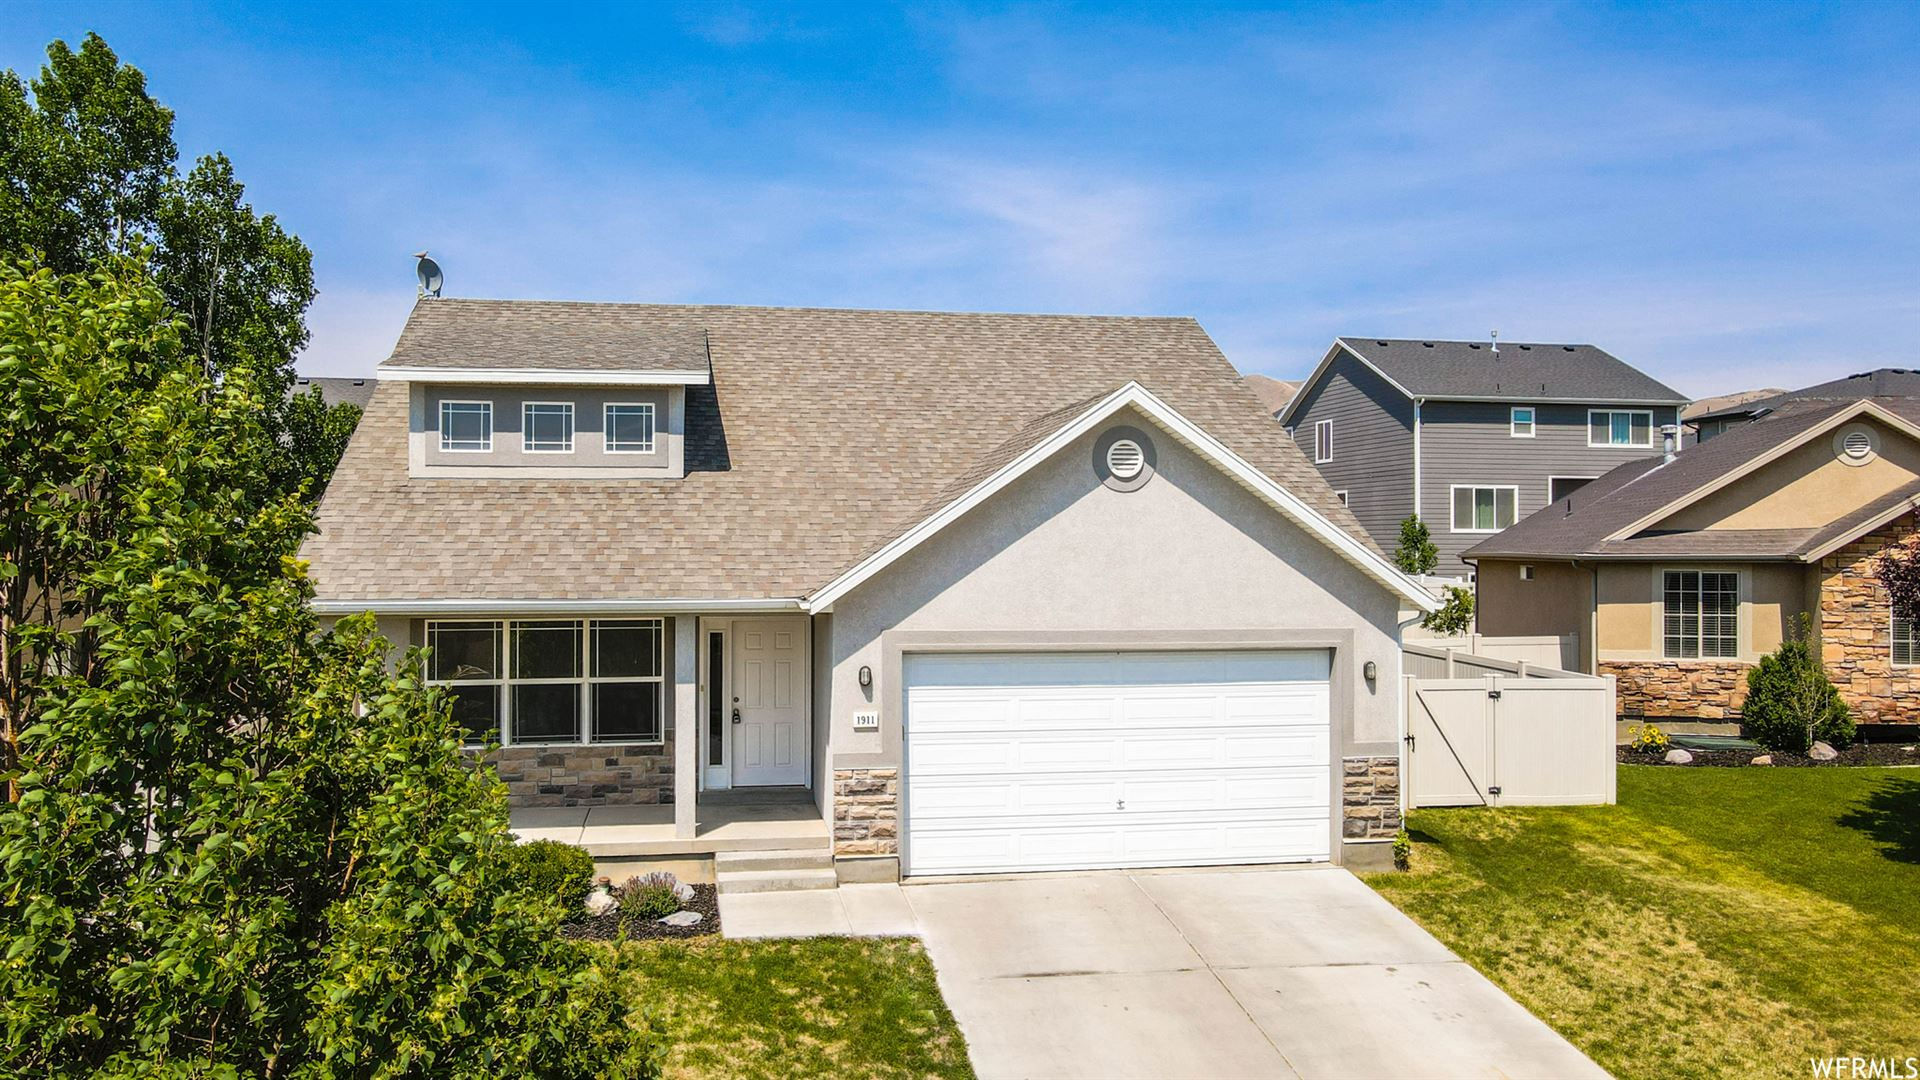 Photo of 1911 N SEGO LILLY DR, Saratoga Springs, UT 84045 (MLS # 1749816)